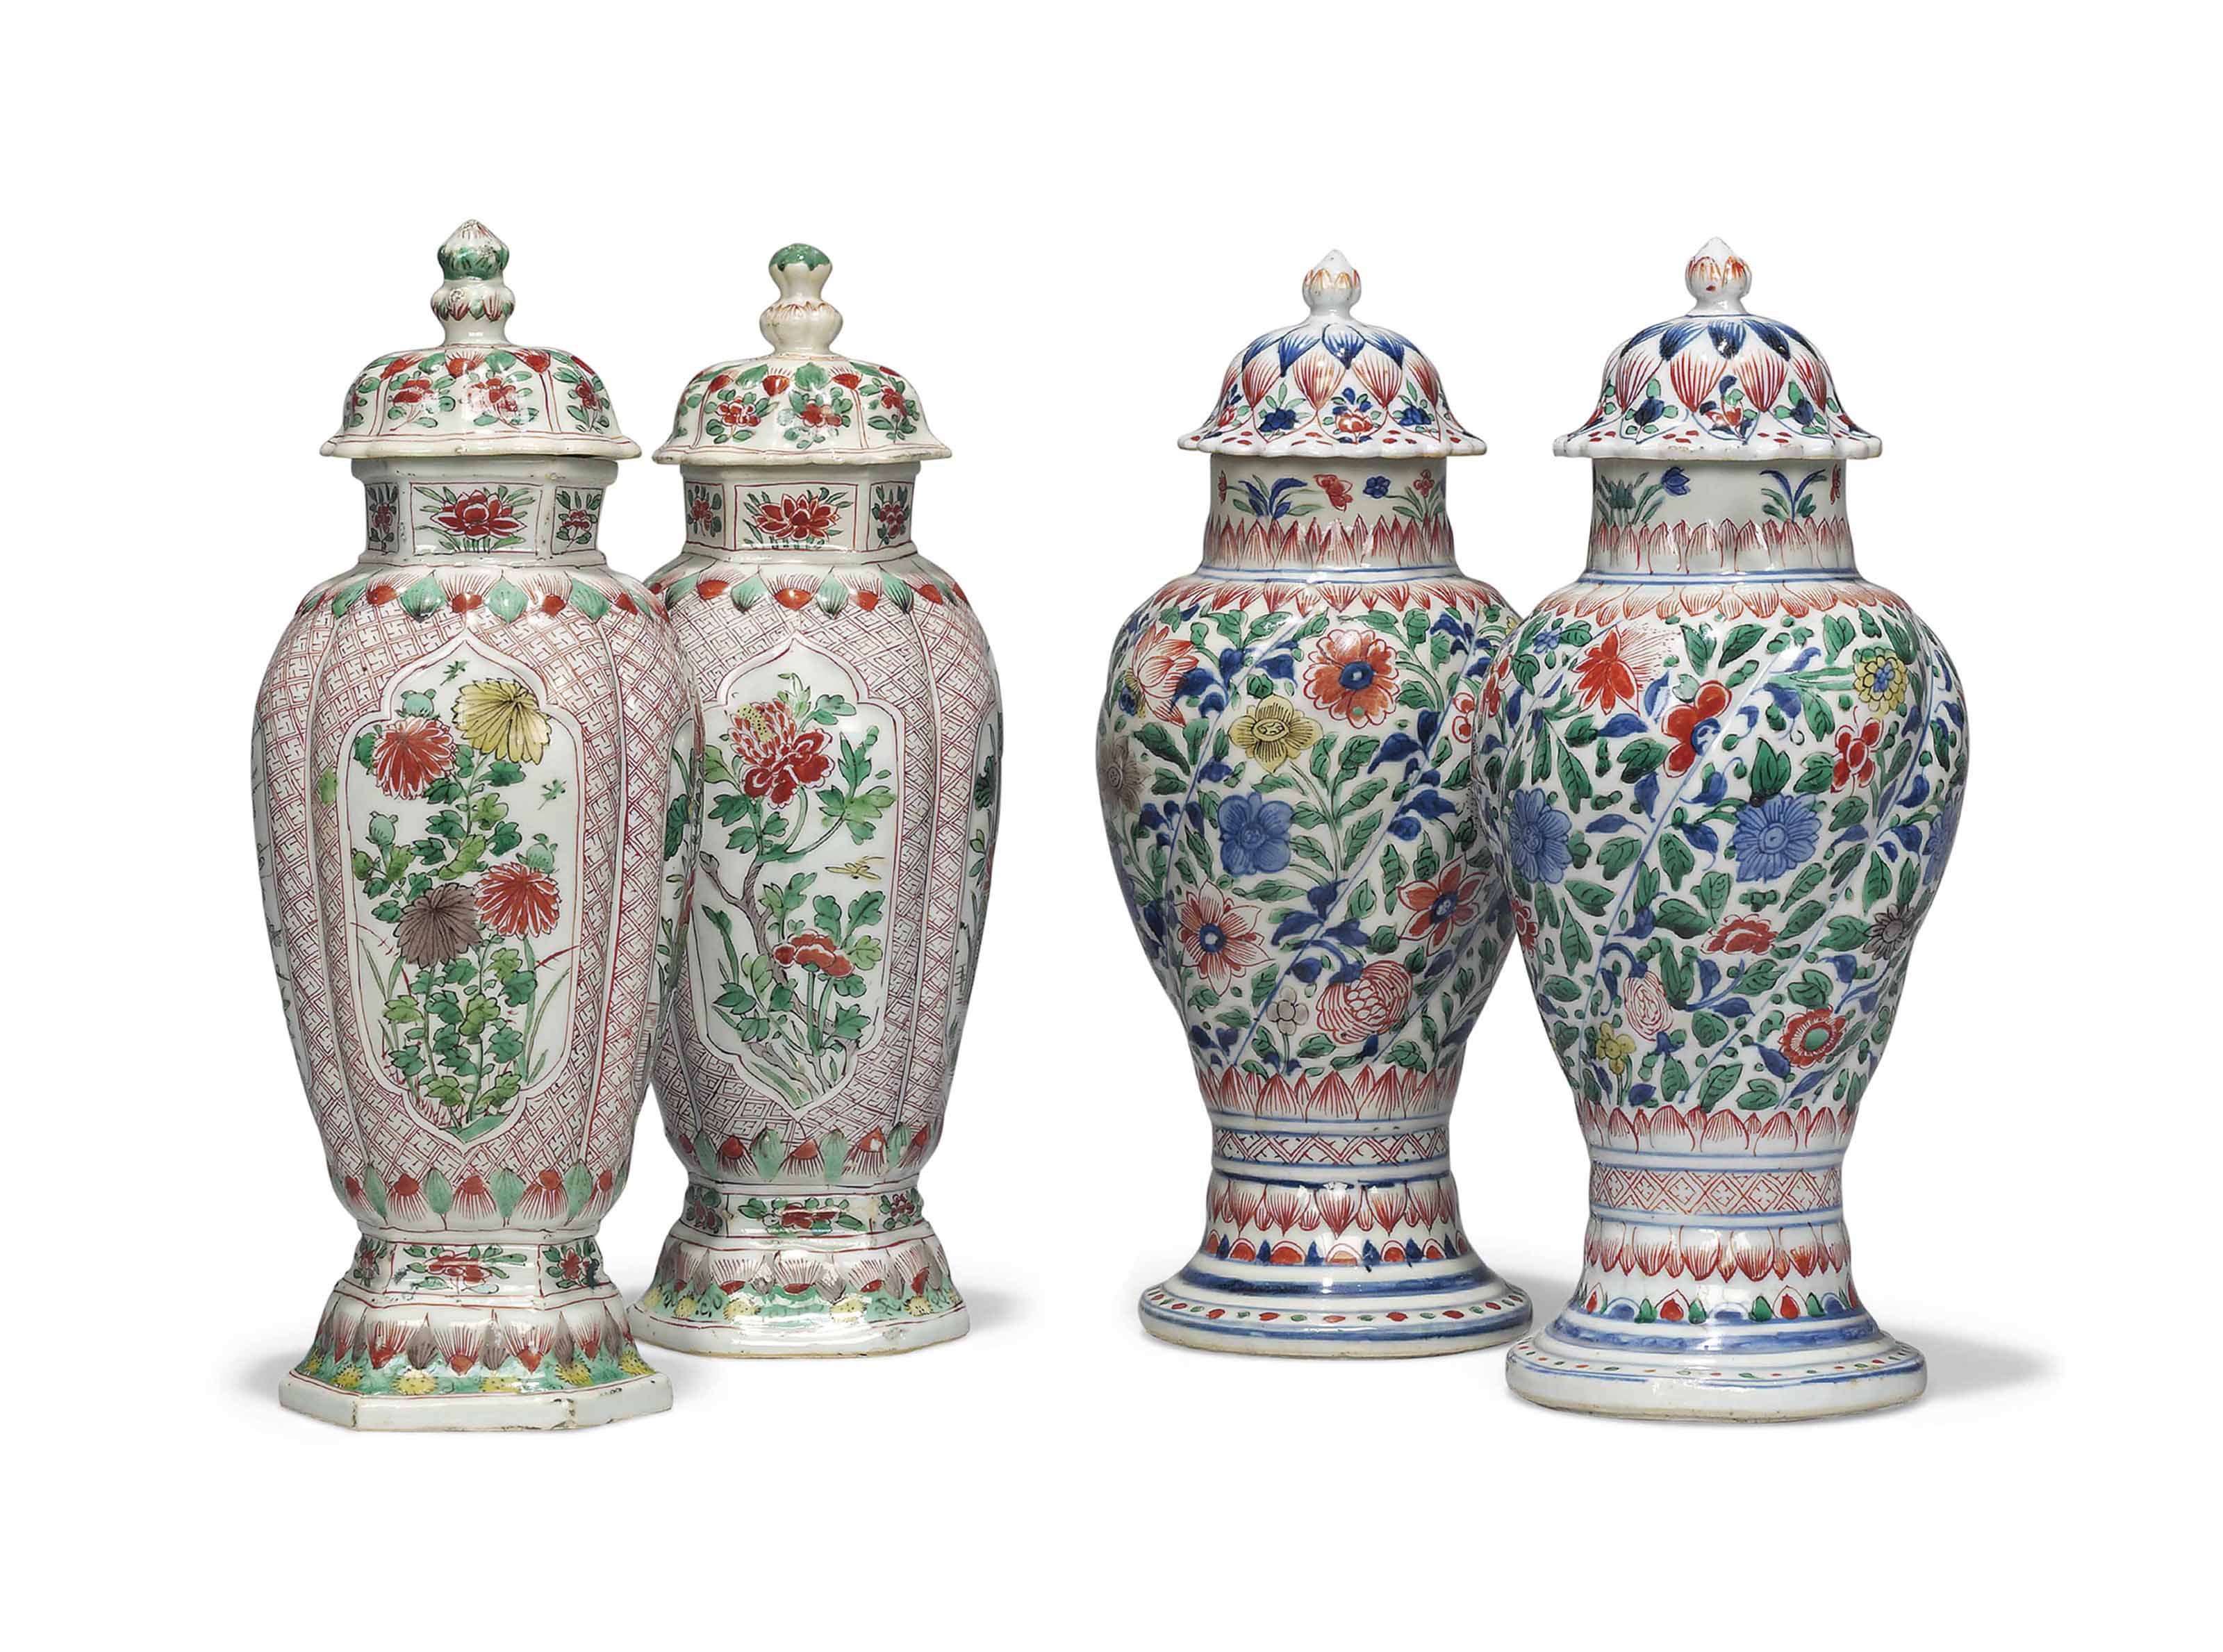 TWO PAIRS OF CHINESE FAMILLE VERTE VASES AND COVERS